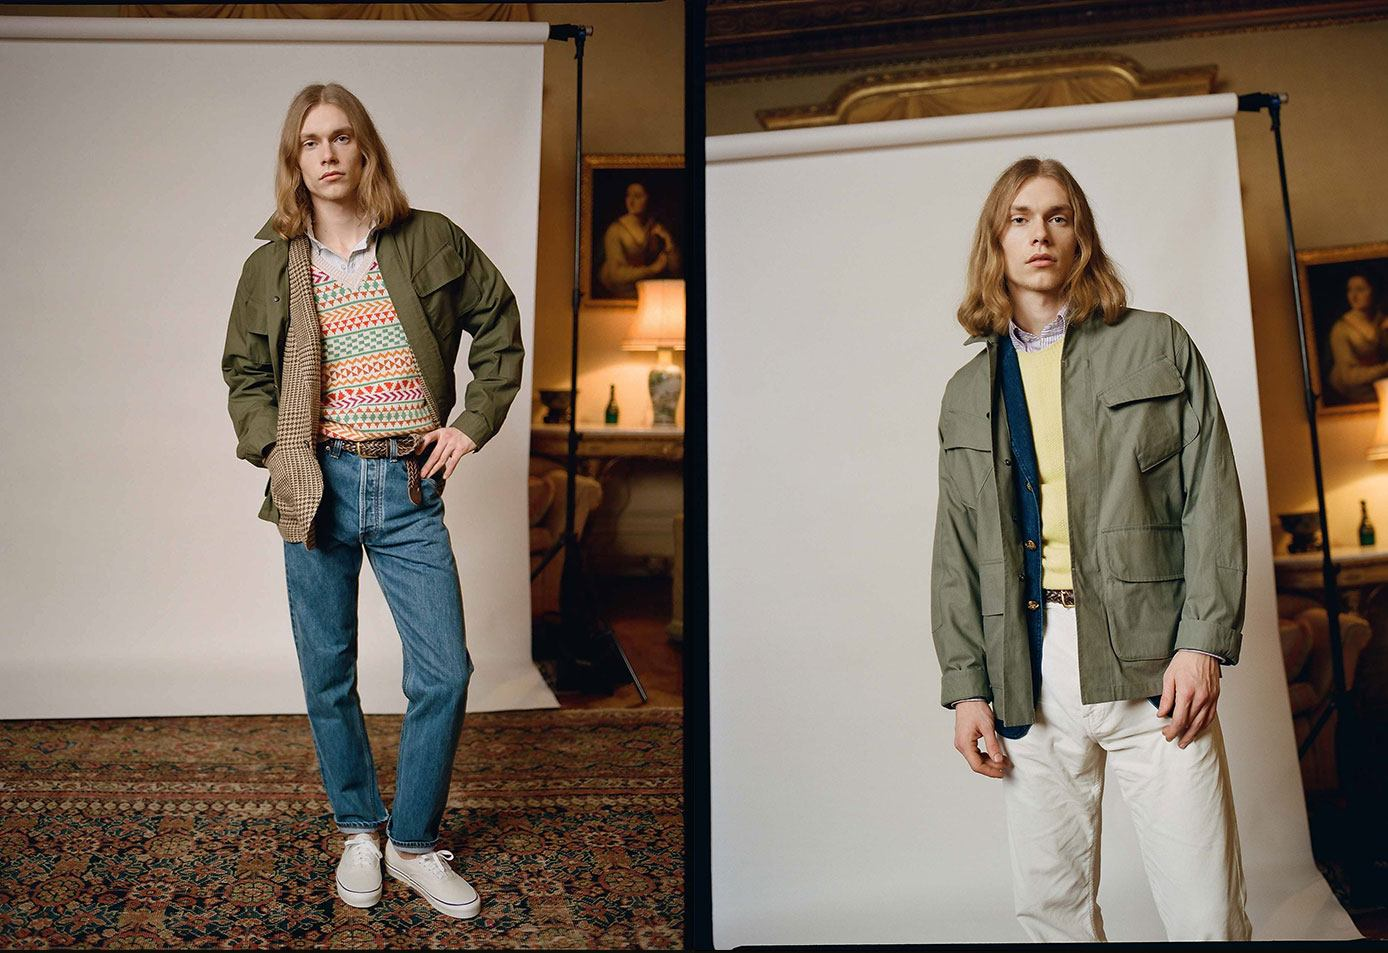 Run Through the Jungle: Our Take on a Timeless Classic